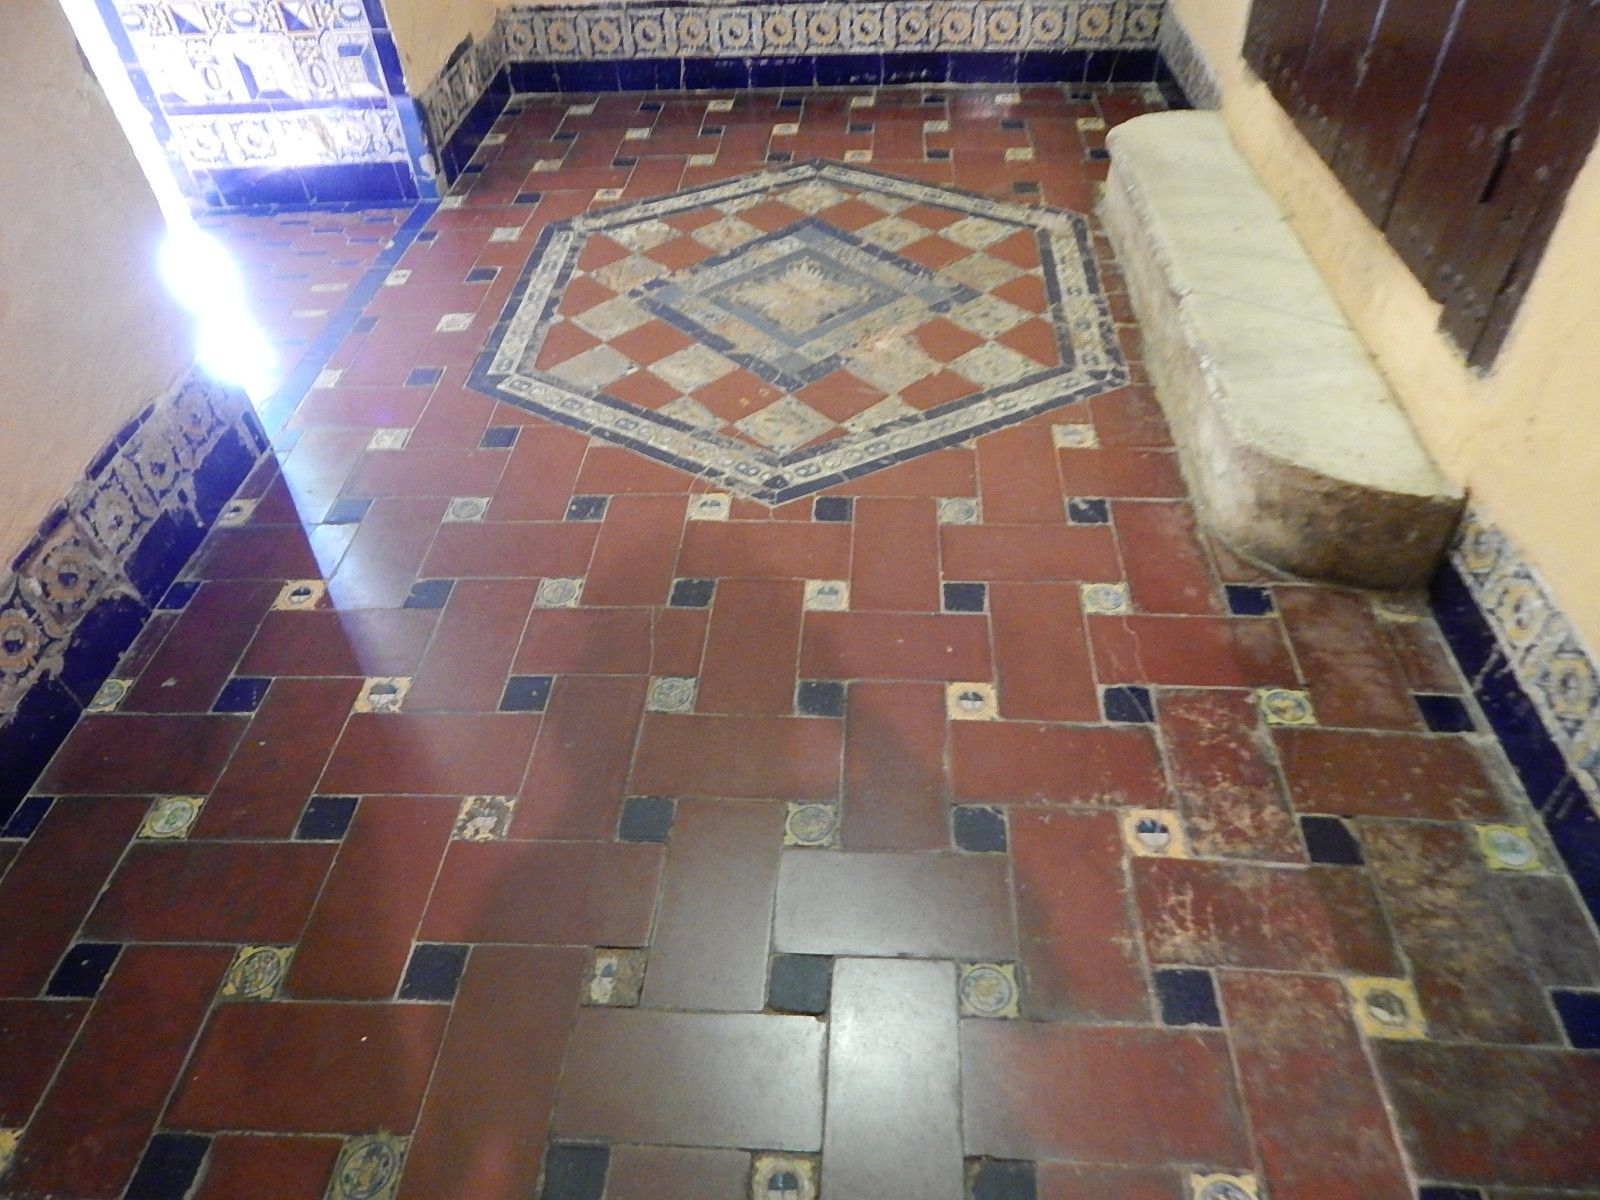 The rich warm colors add to this basket weave tile floor in seville the rich warm colors add to this basket weave tile floor in seville dailygadgetfo Choice Image